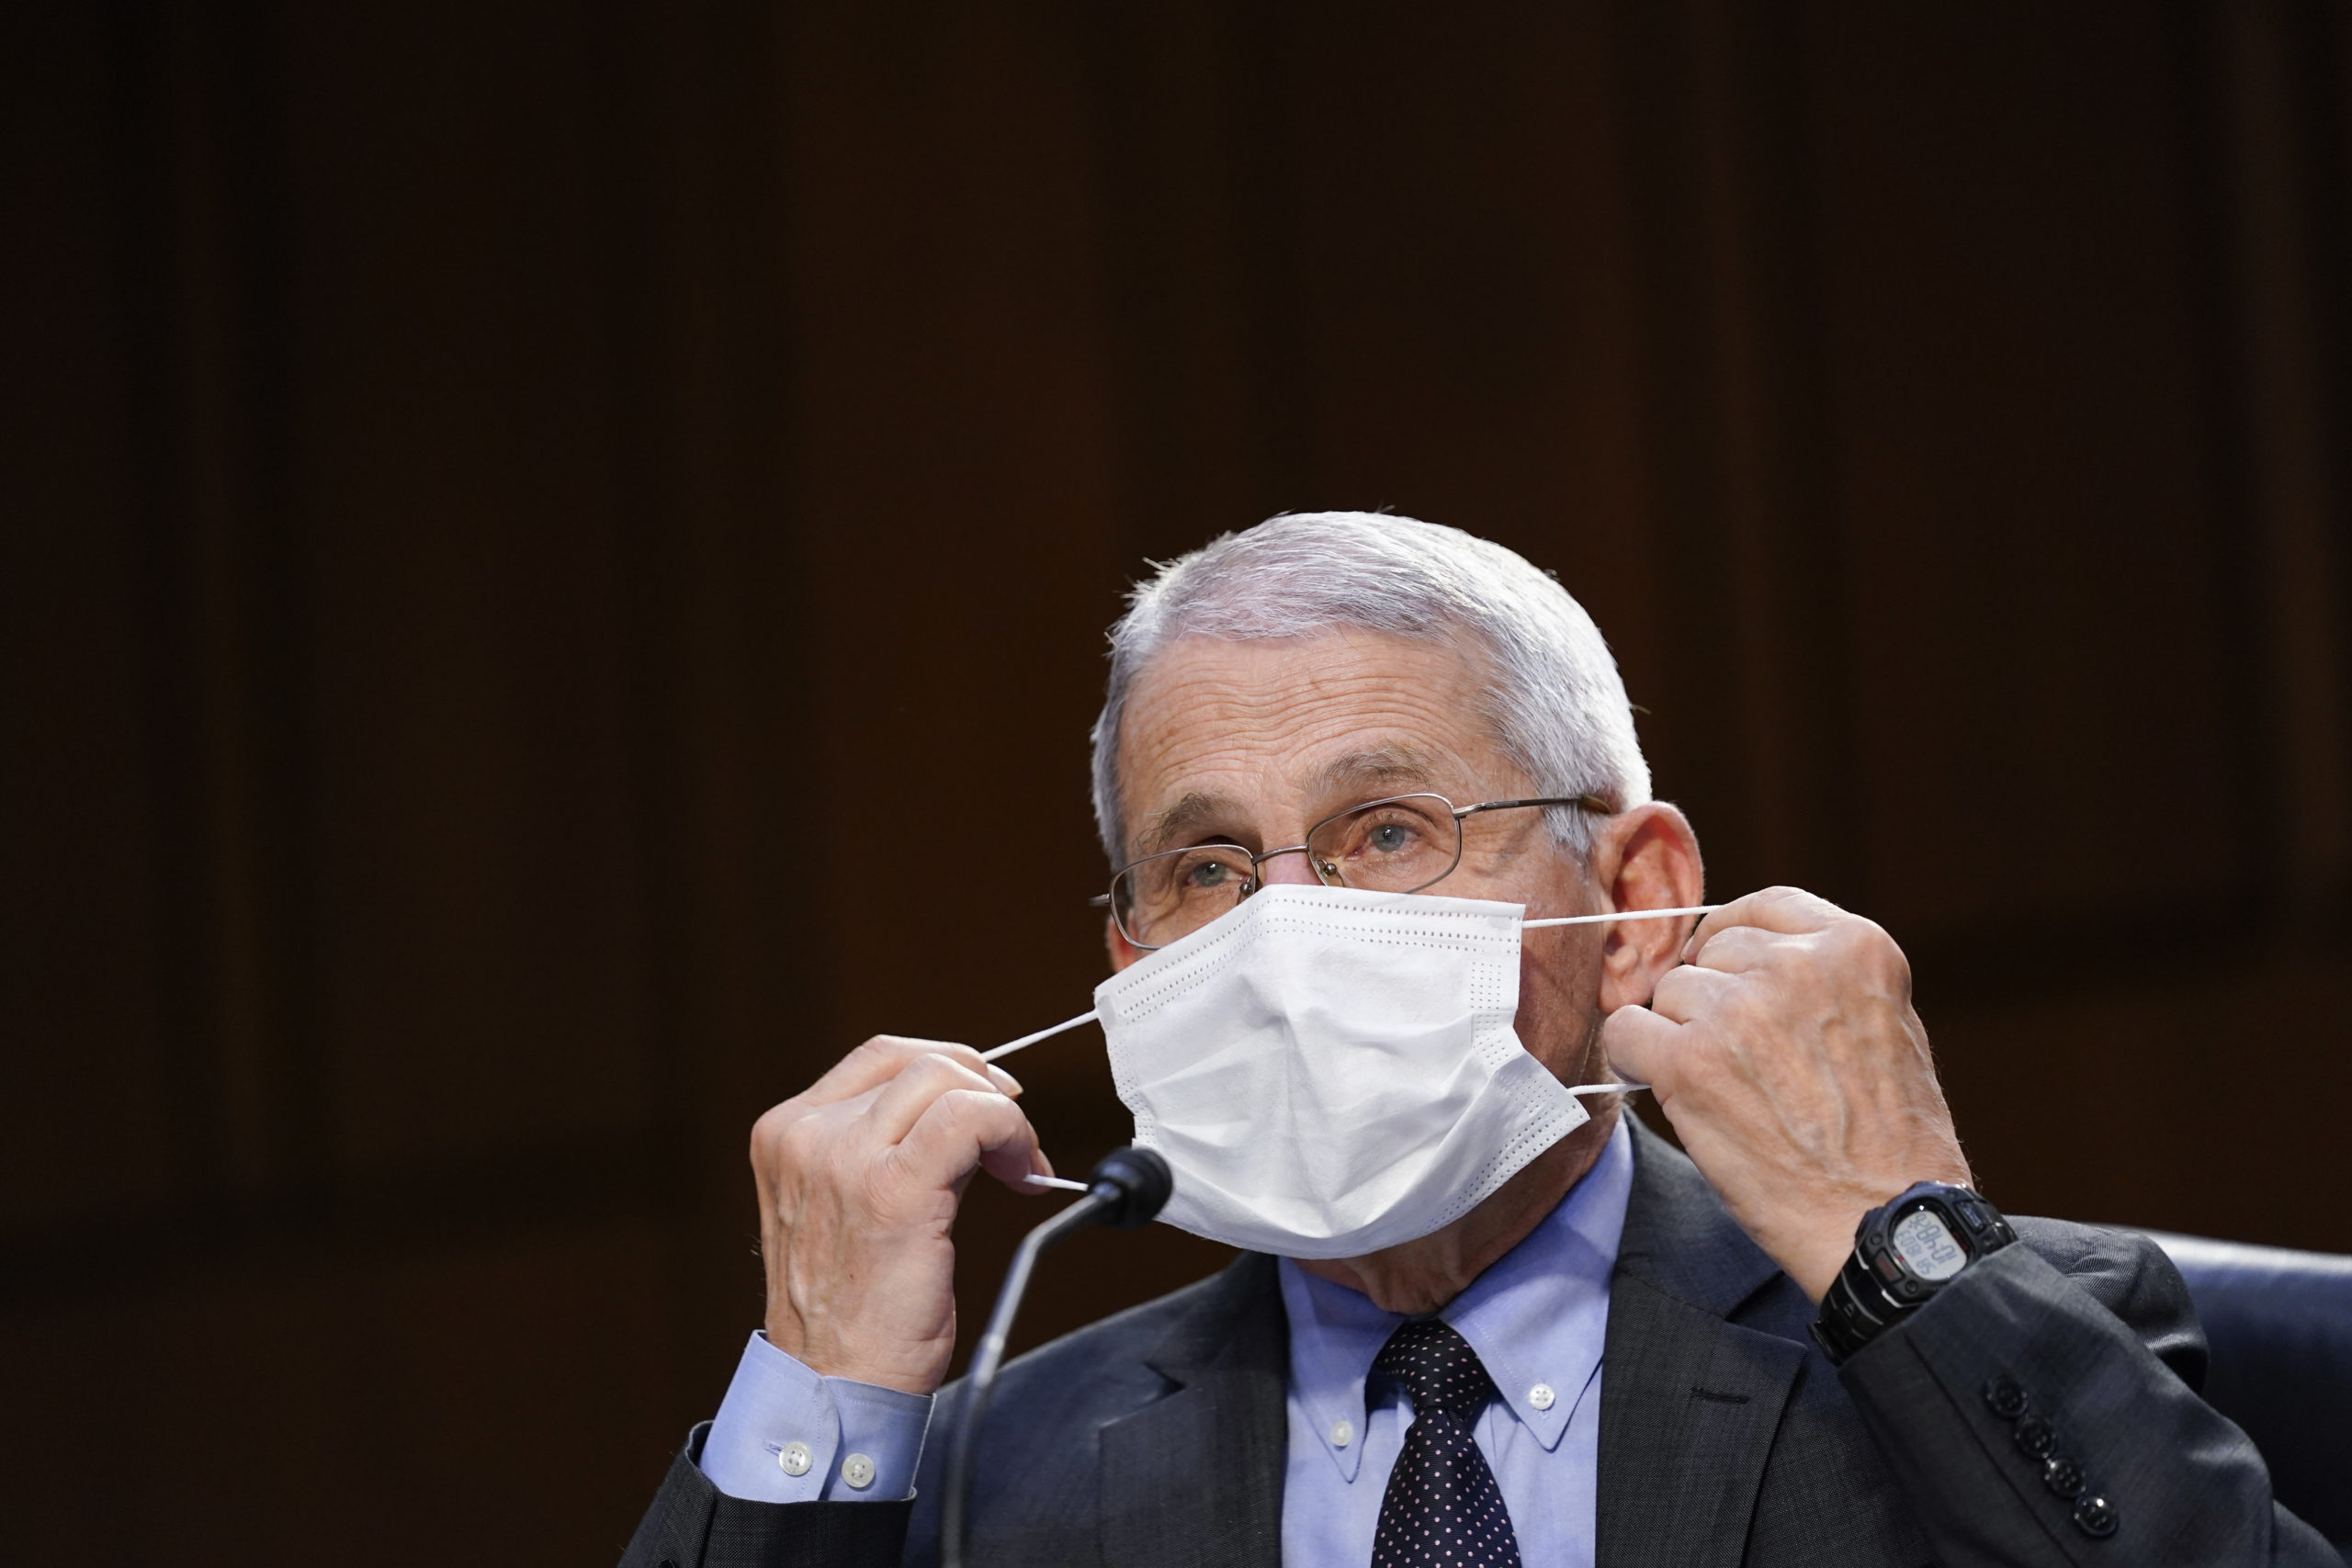 WASHINGTON, DC - MARCH 18: Dr. Anthony Fauci, director of the National Institute of Allergy and Infectious Diseases, adjusts a face mask during a Senate Health, Education, Labor and Pensions Committee hearing on the federal coronavirus response on Capitol Hill on March 18, 2021 in Washington, DC. (Photo by Susan Walsh-Pool/Getty Images)